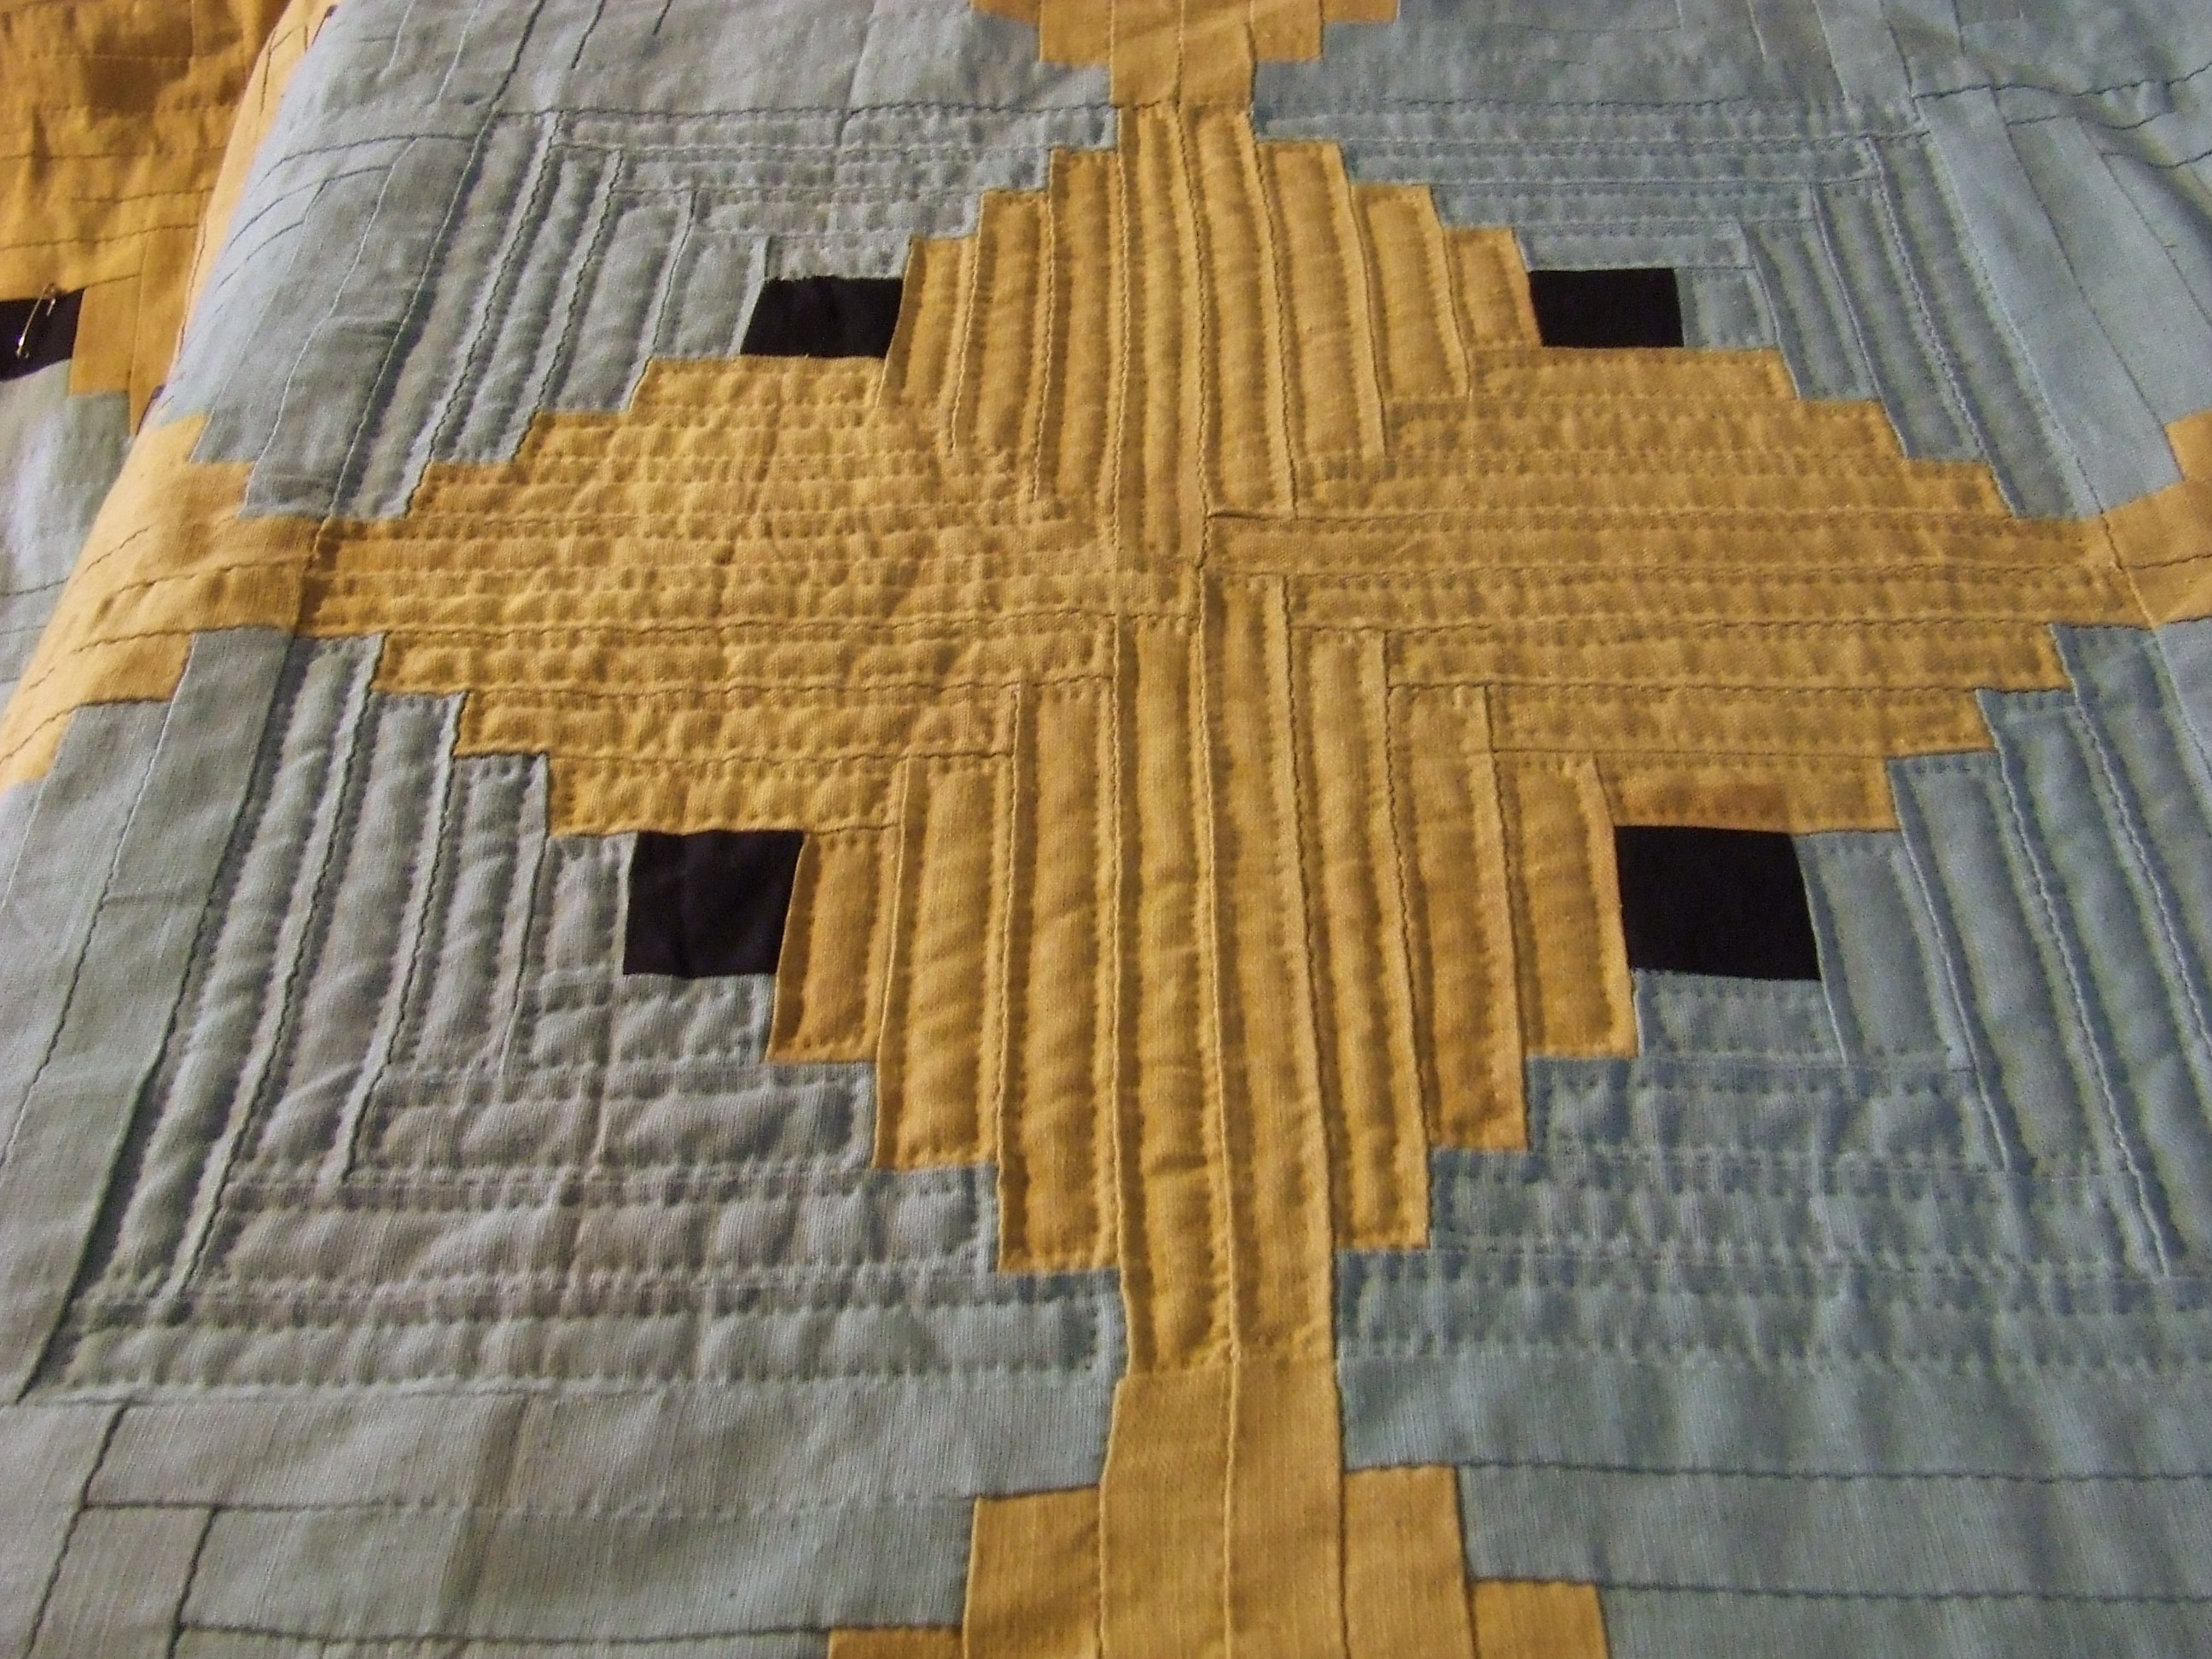 Log Cabin Quilt …the hand quilting begins | Tim Latimer - Quilts etc